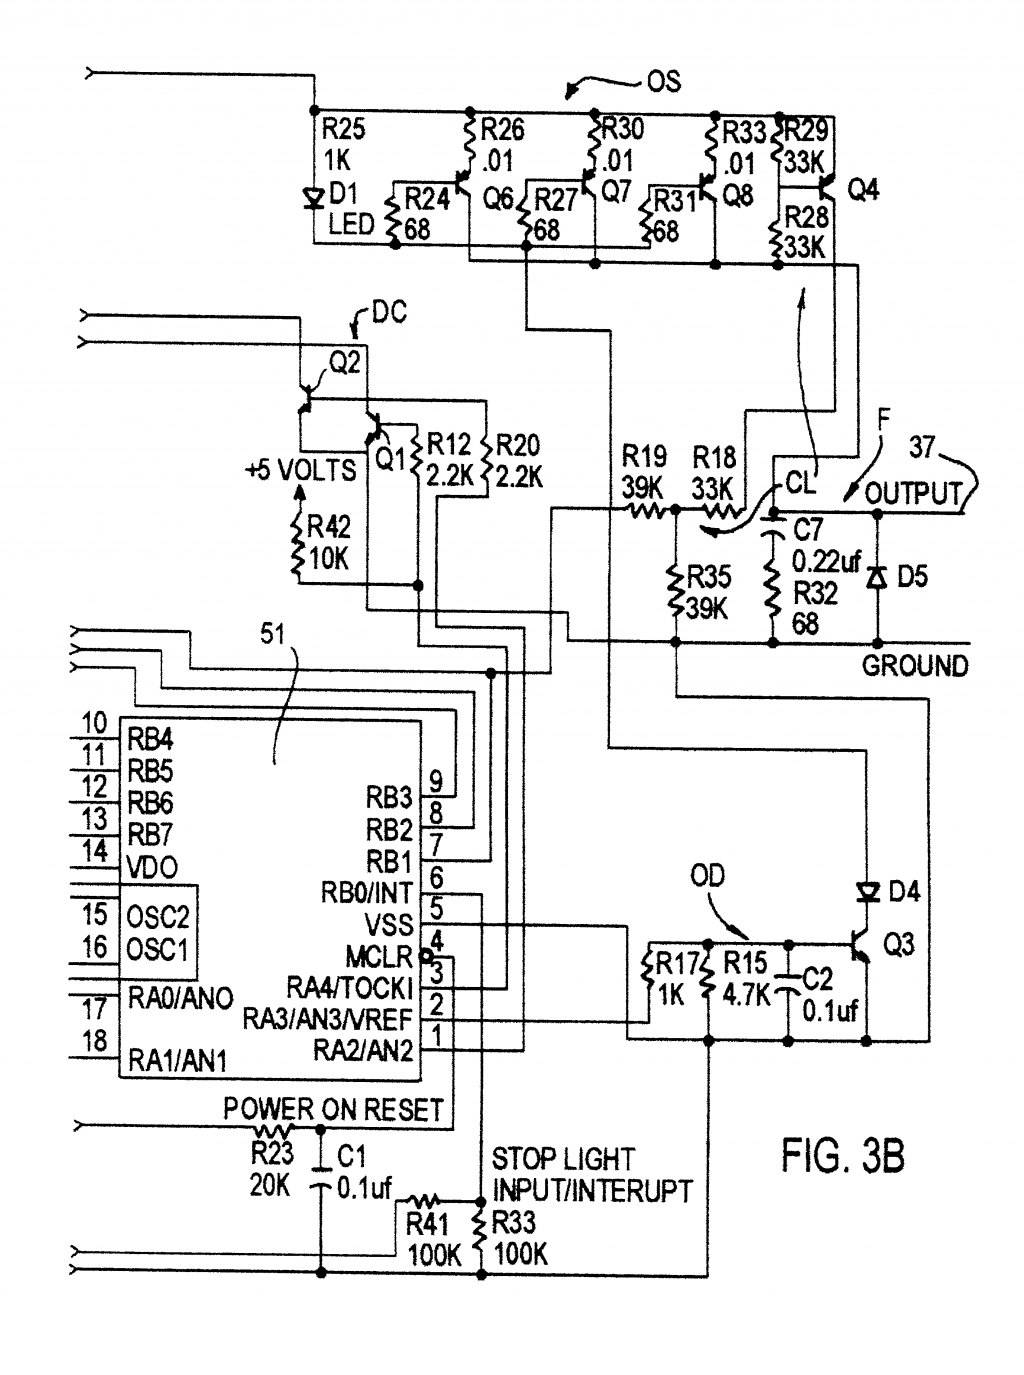 prodigy p2 wiring harness diagram to chevy wiring diagram online Electric Trailer Brake Controller Schematic primus tekonsha electric brake wiring diagram schematic diagram tekonsha prodigy p2 brake controller prodigy p2 wiring harness diagram to chevy